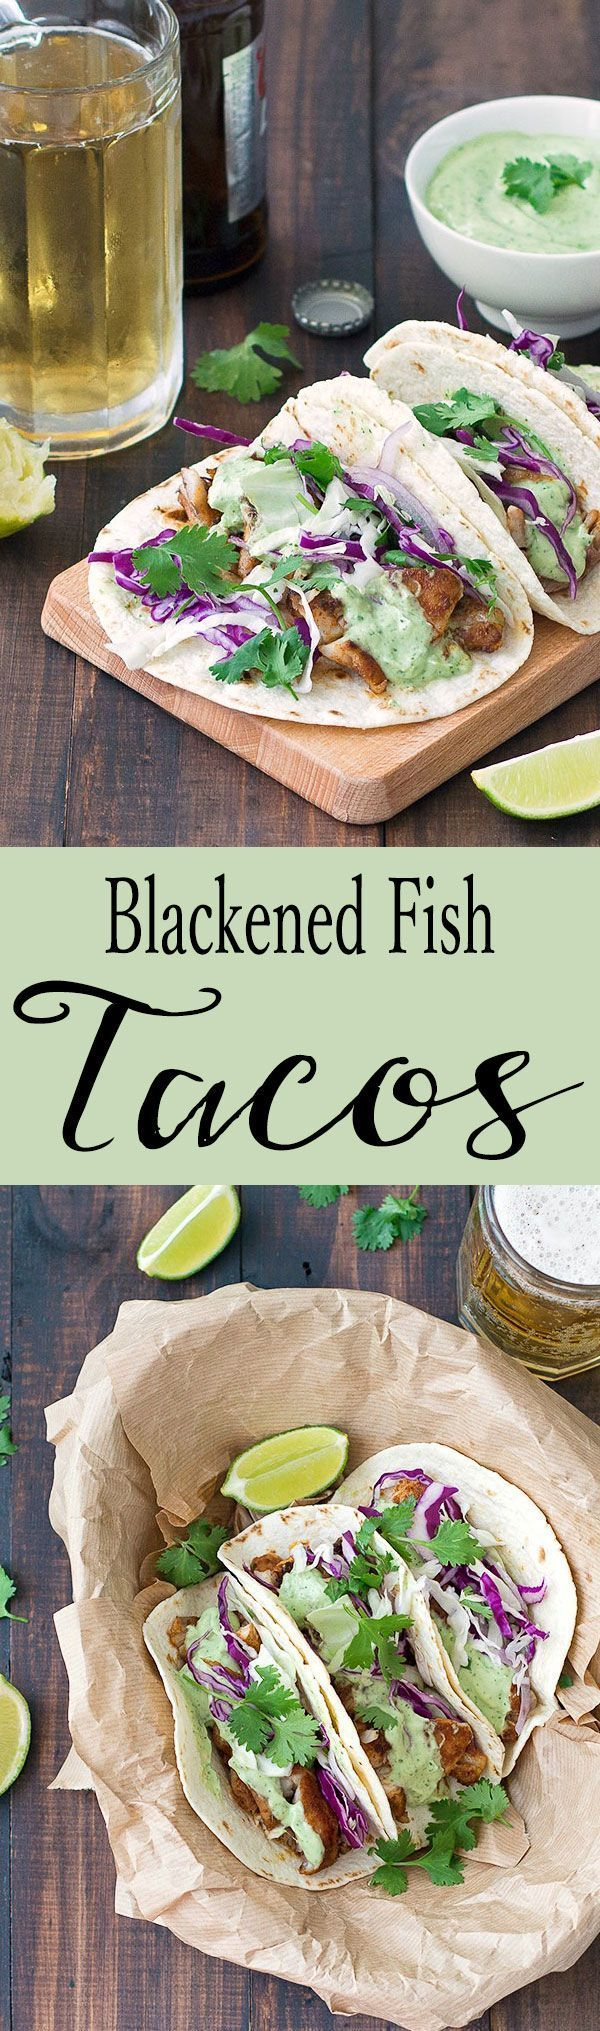 These blackened fish tacos come together in under 30 minutes and make a delicious weeknight meal. Spiced white fish is folded into warm tortillas, topped with shredded red cabbage and drizzled with a creamy avocado sauce. You can make this easy recipe wit (Tilapia Recipes Tacos)